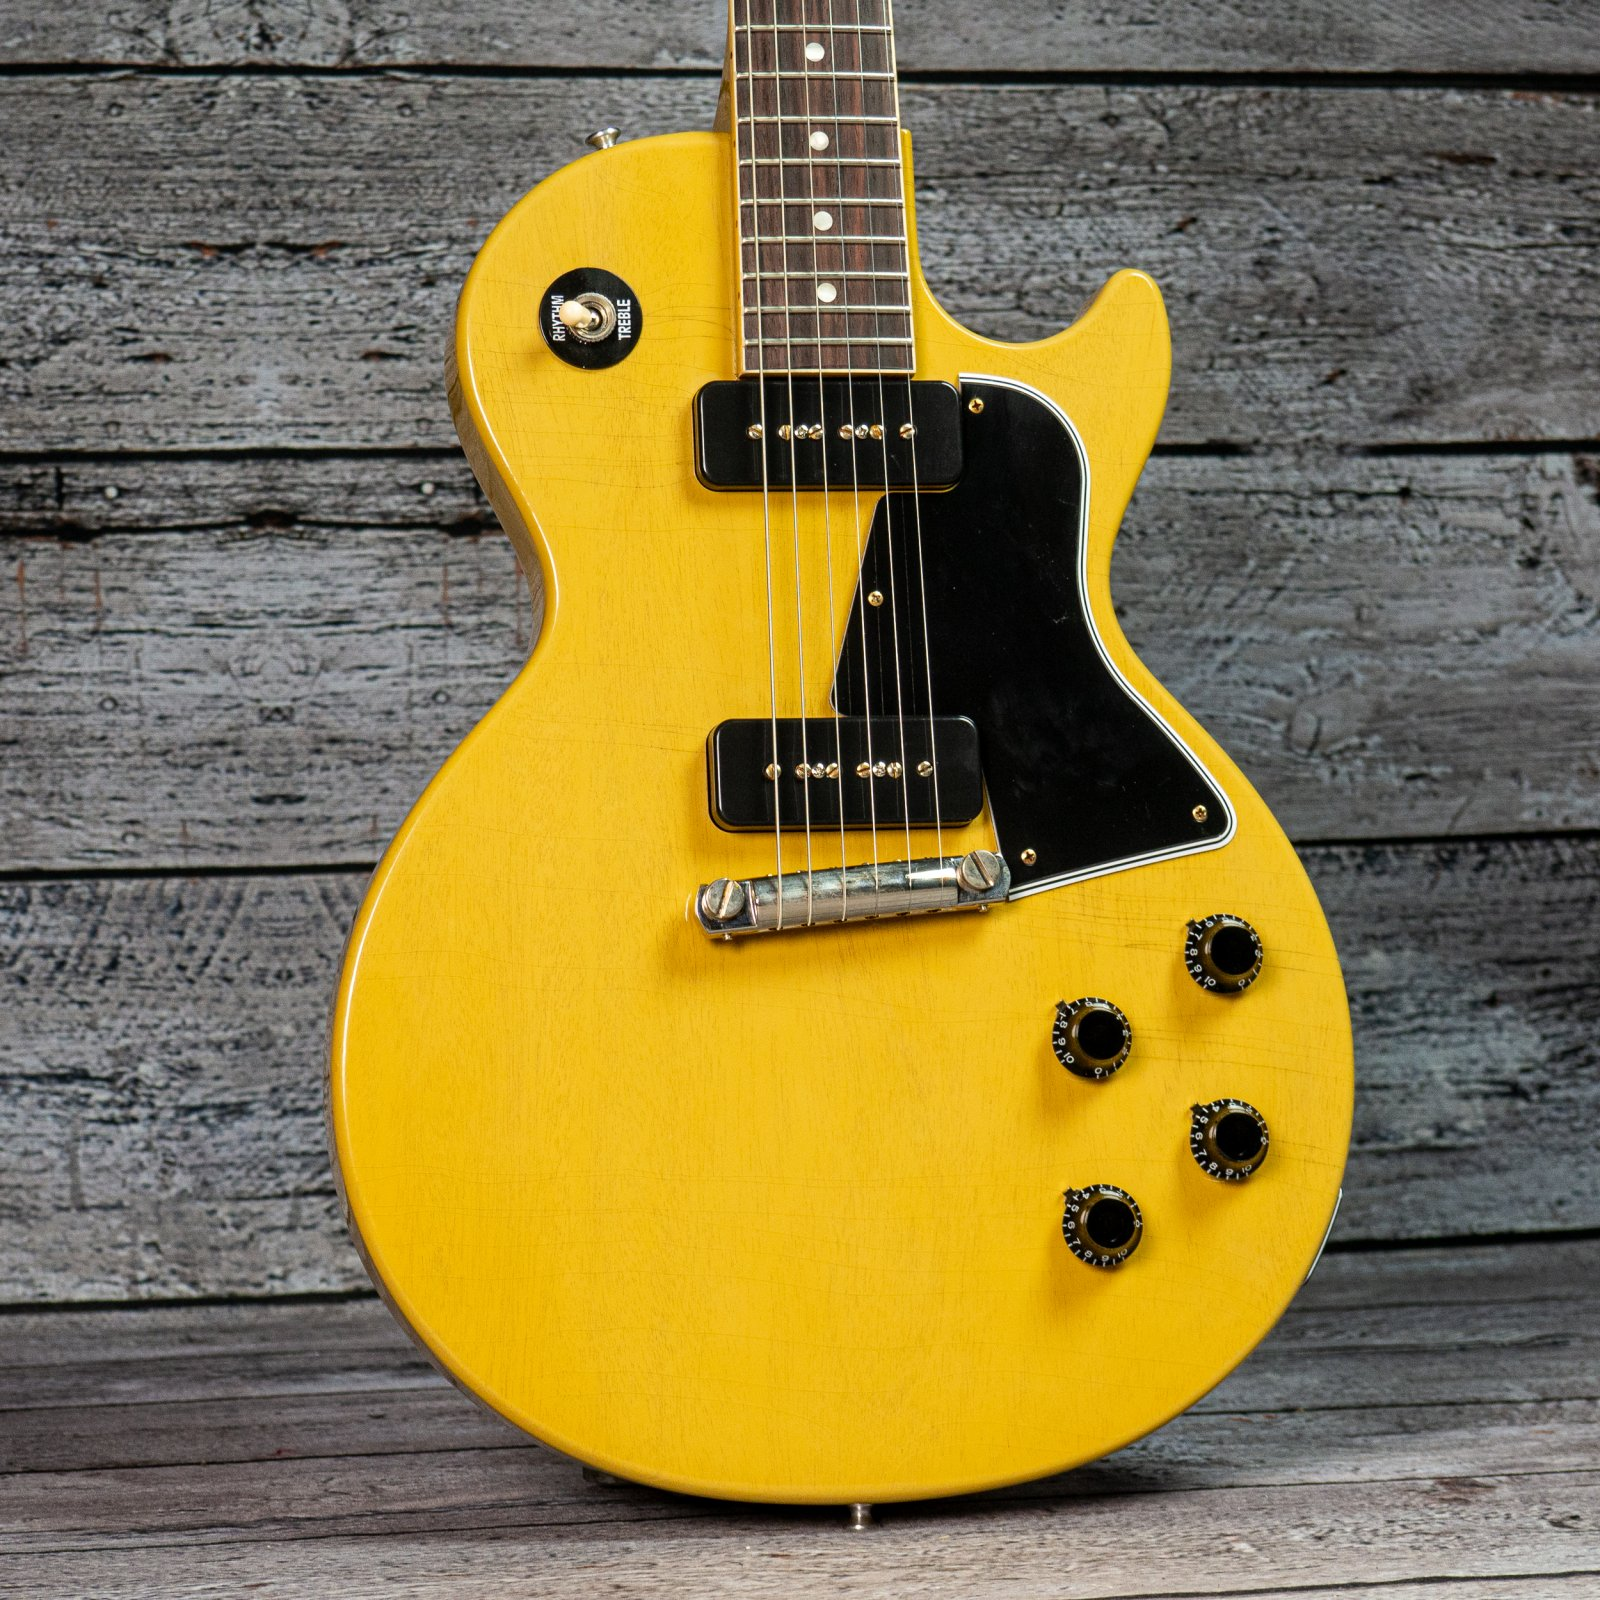 Gibson 1957 Les Paul Special Single Cut Reissue Murphy Lab Ultra Light Aged - TV Yellow